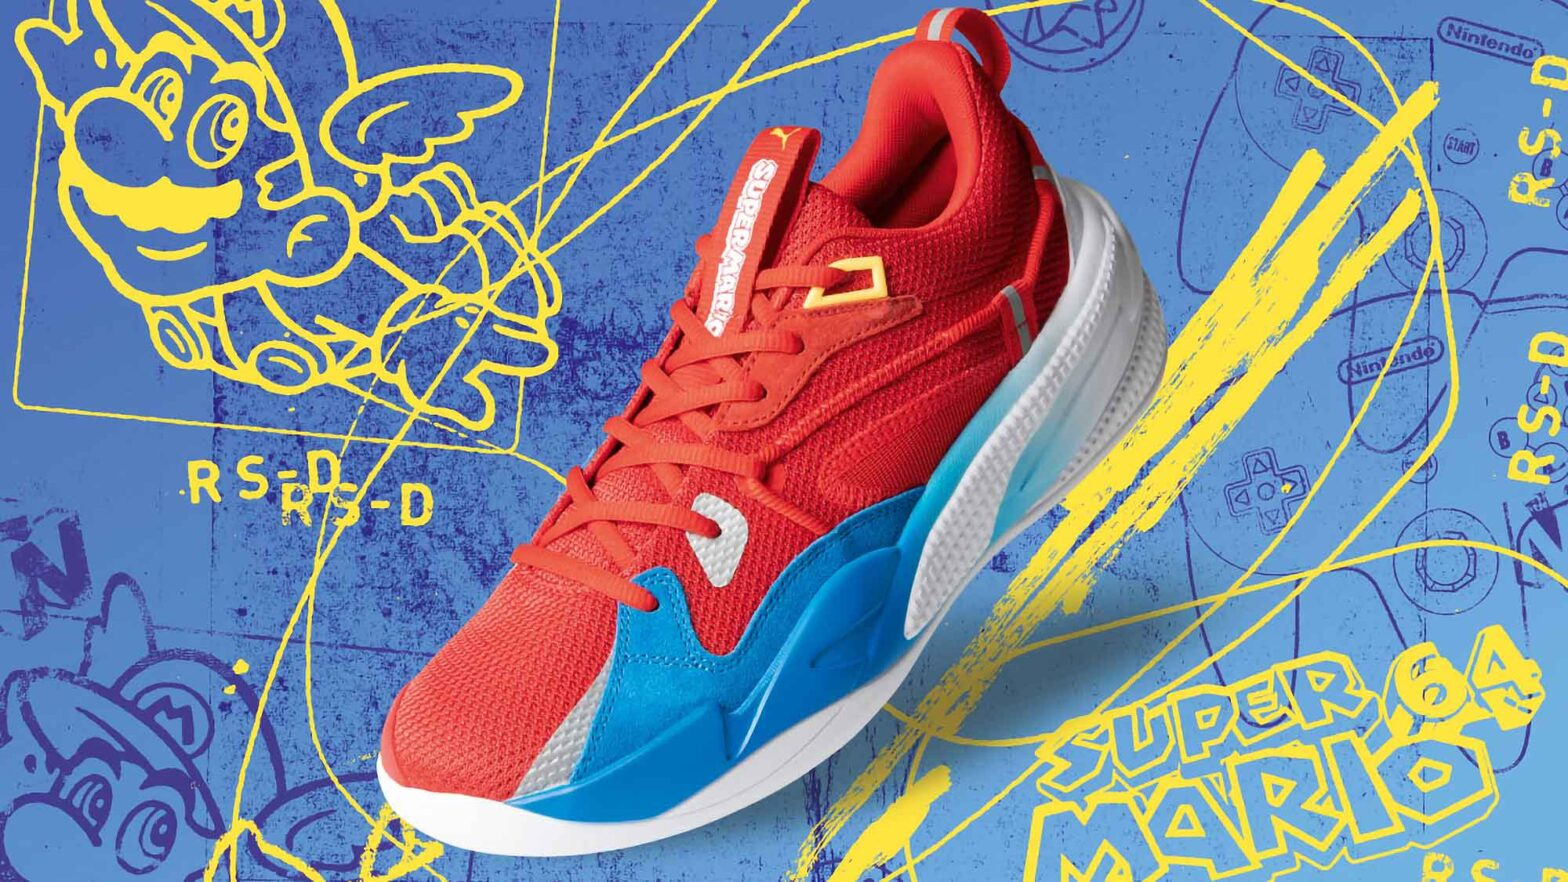 Puma RS-Dreamer Super Mario 64 Basketball Shoes